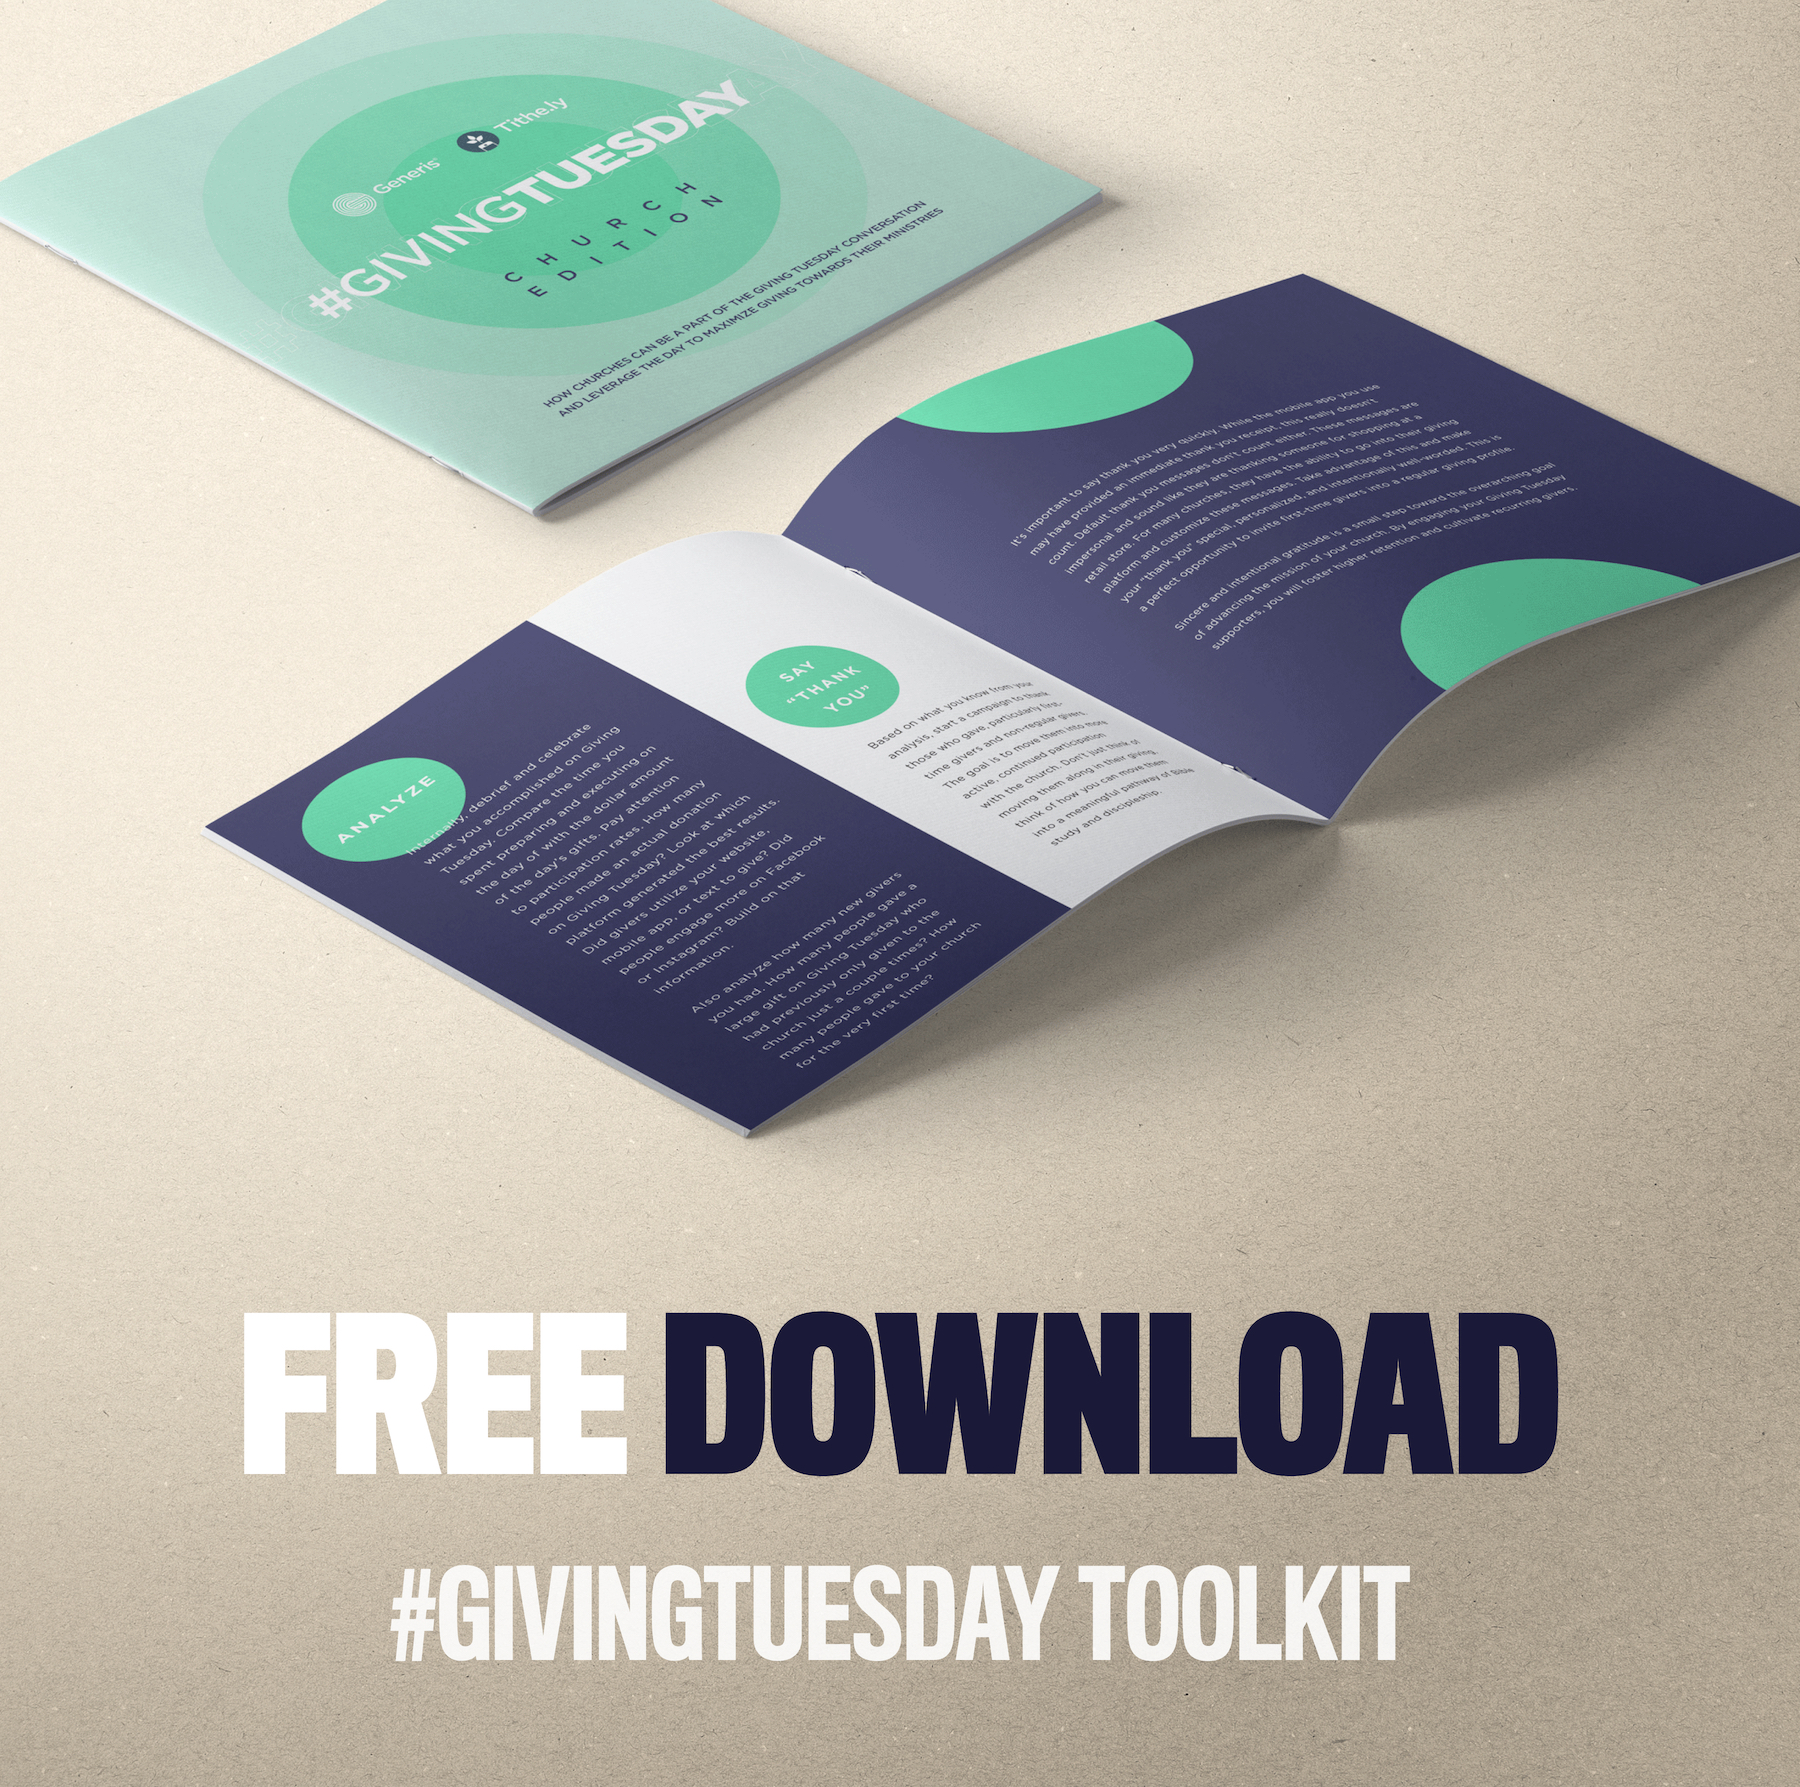 https://get.tithe.ly/giving-tuesday